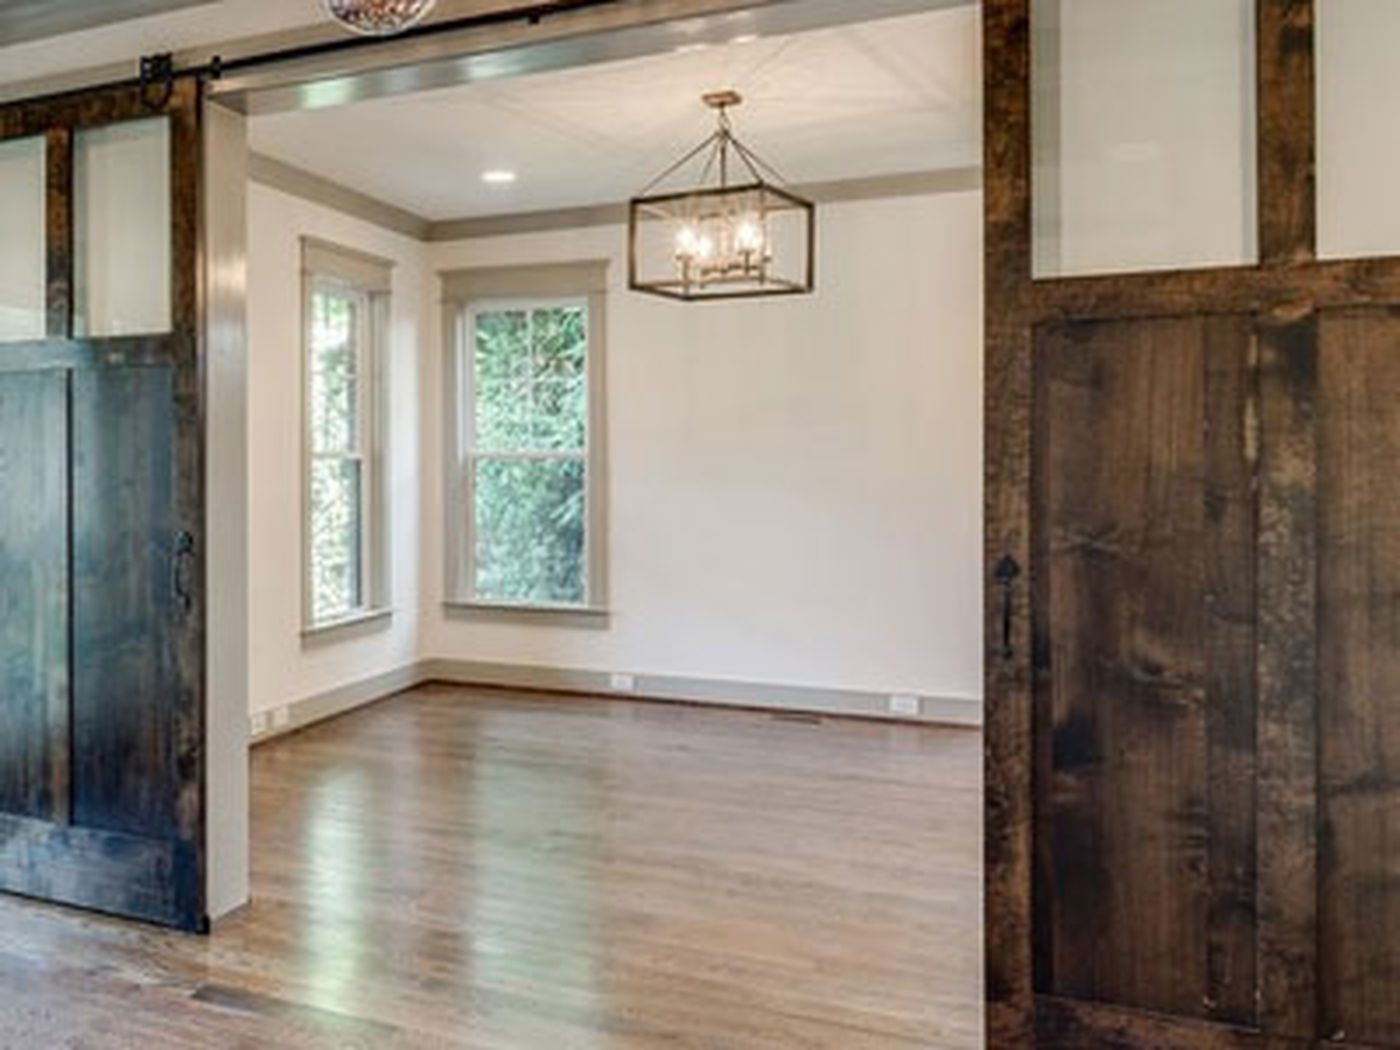 11 Inspirational Barn Door Ideas This Old House